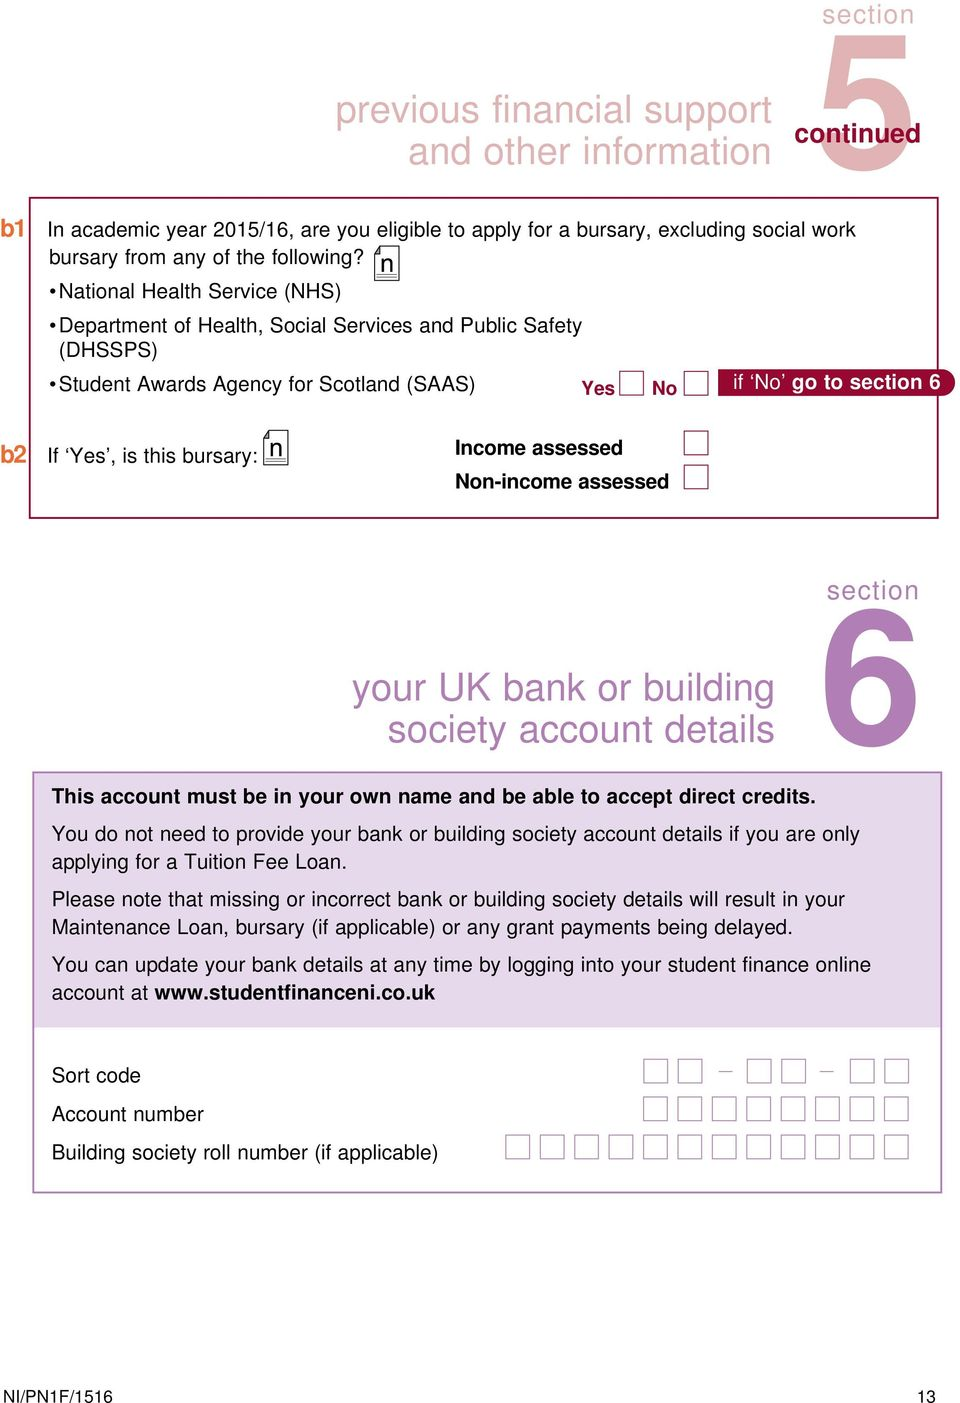 n-income assessed your UK bank or building society account details section 6 This account must be in your own name and be able to accept direct credits.